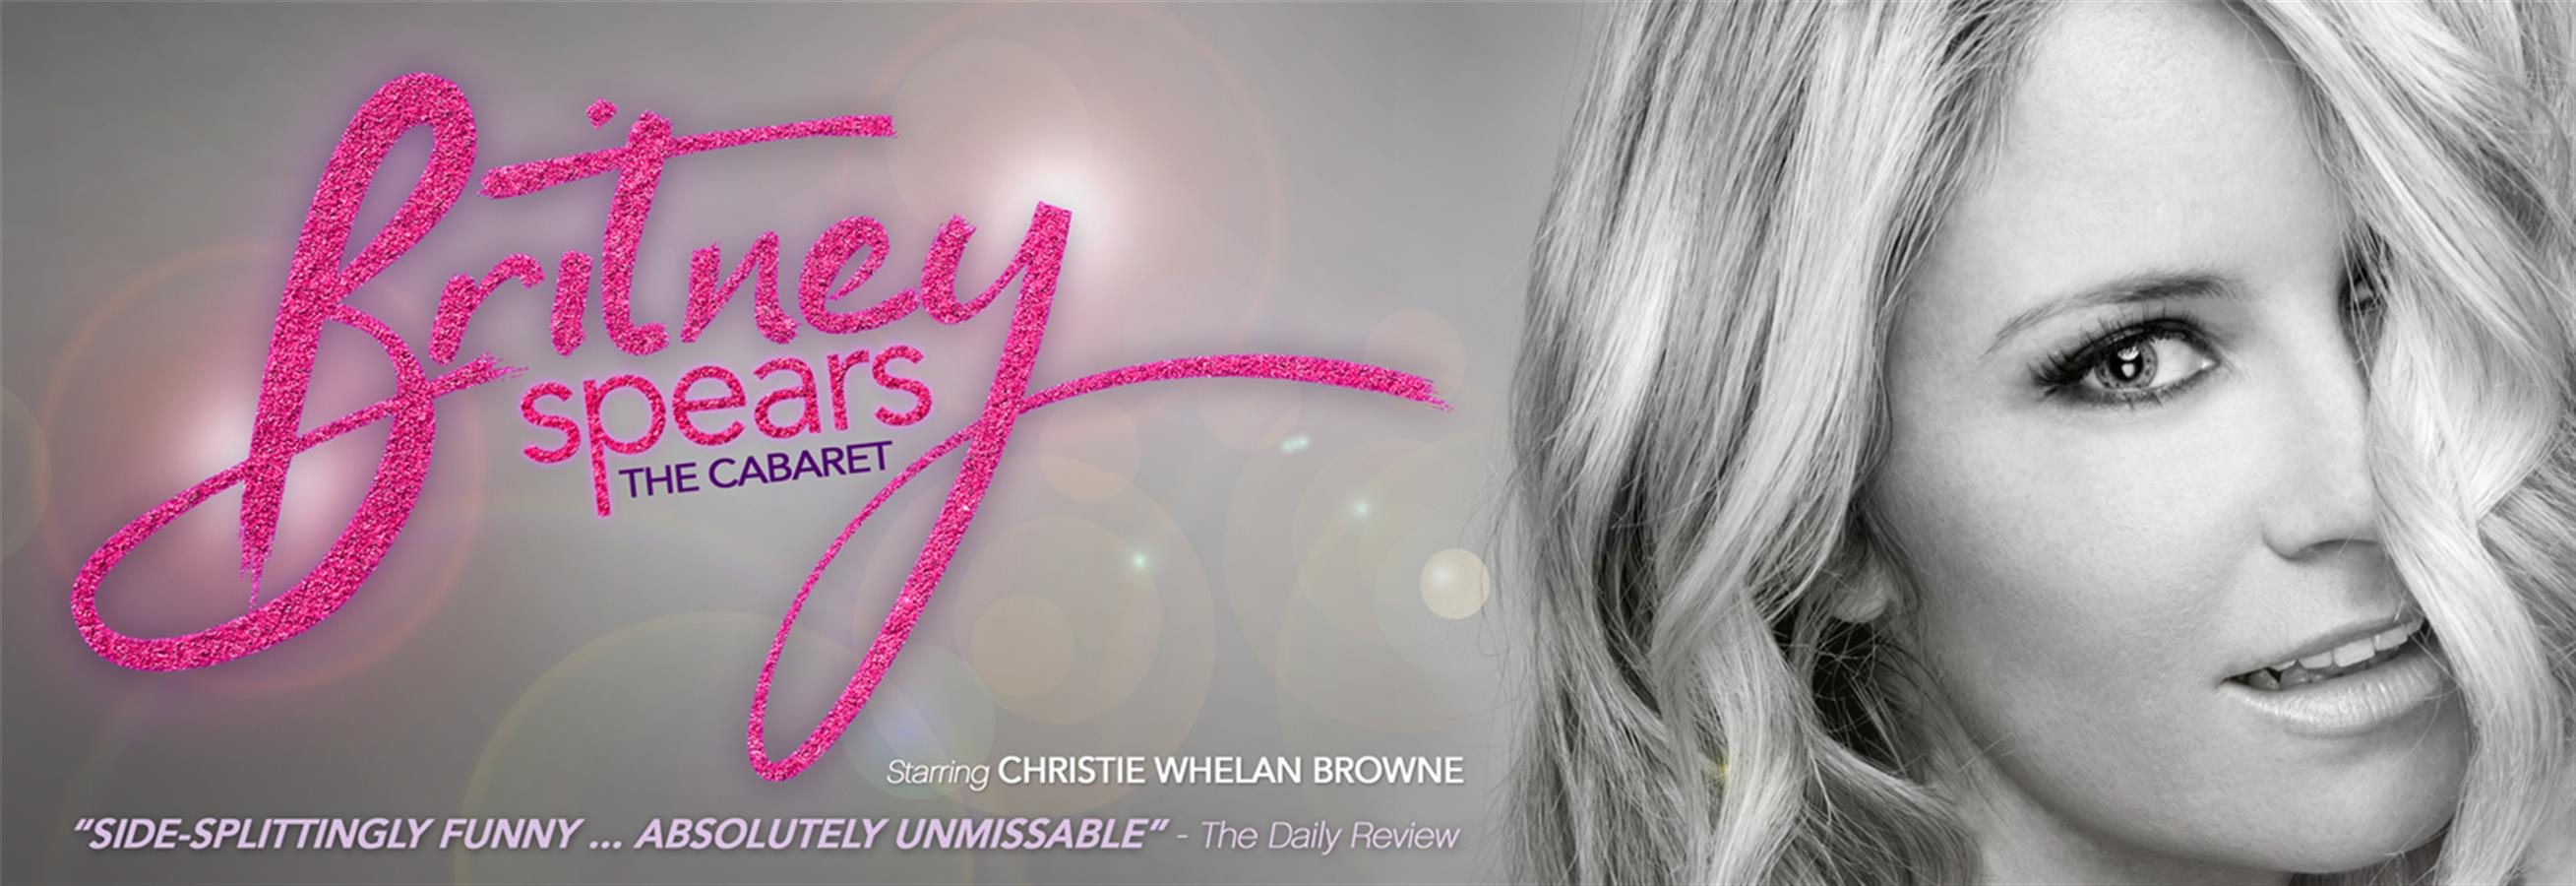 Britney Spears the Cabaret  gallery image